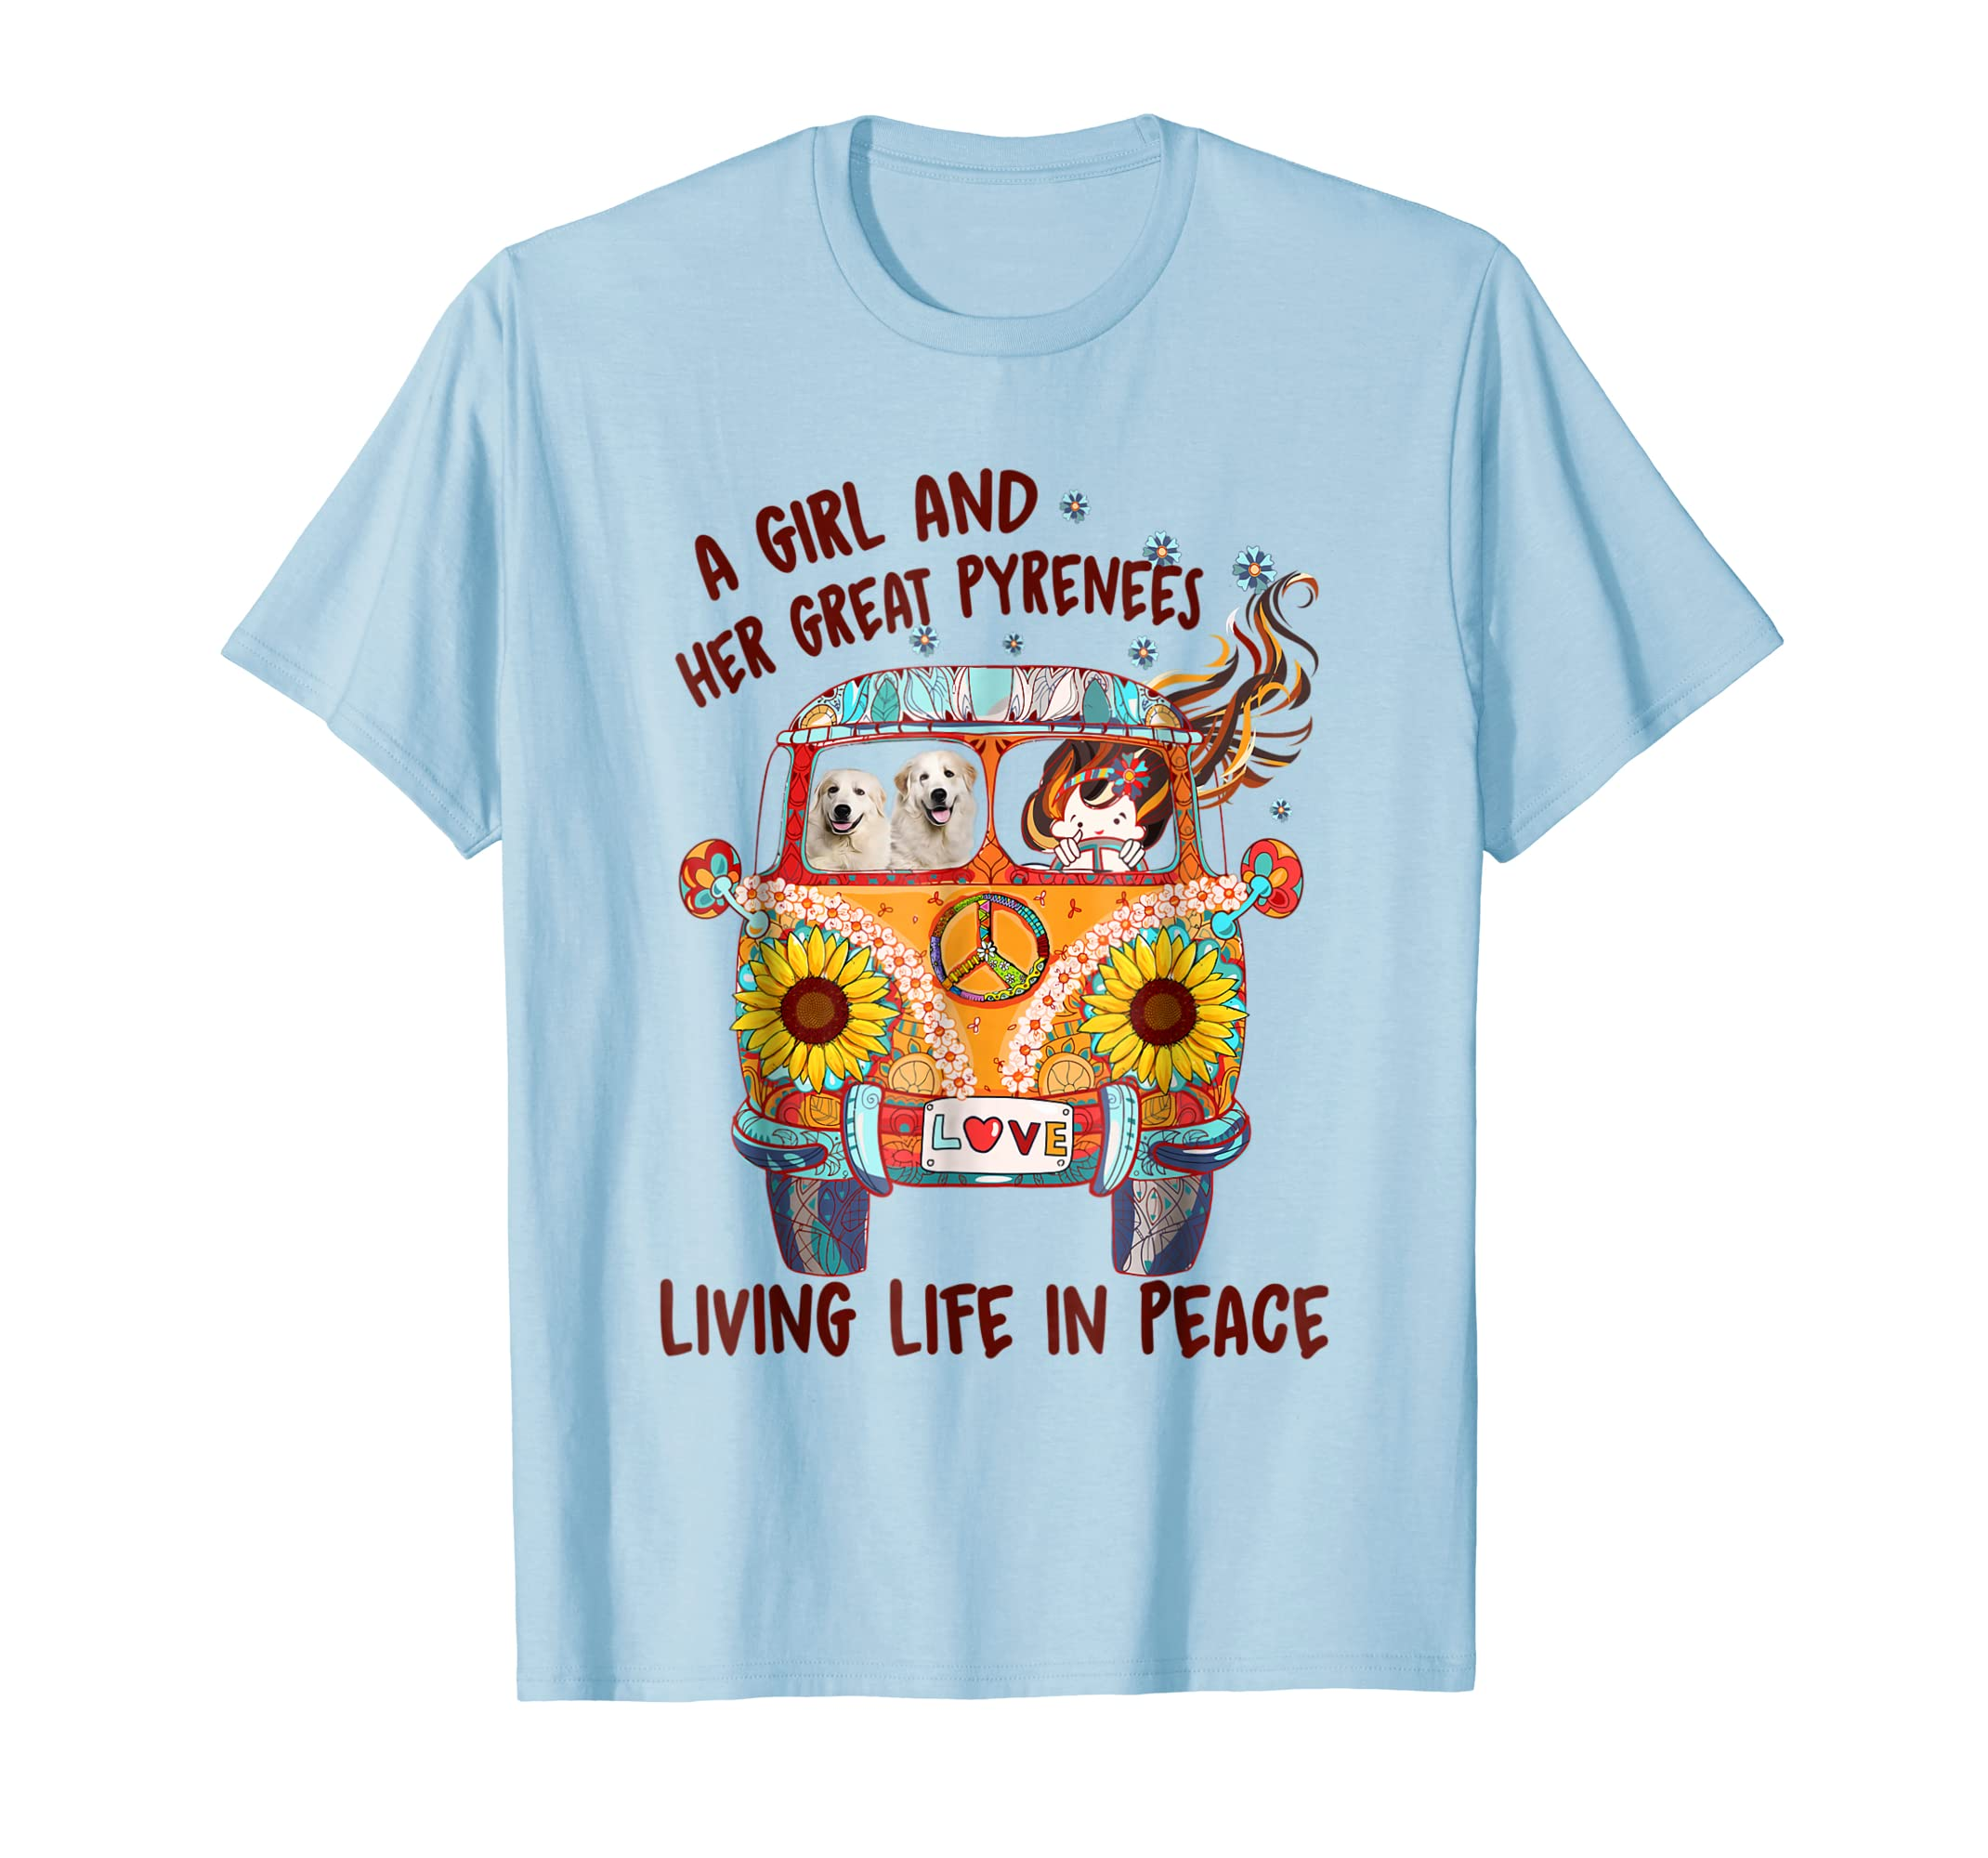 A girl and her Great Pyrenees living life in peace shirt